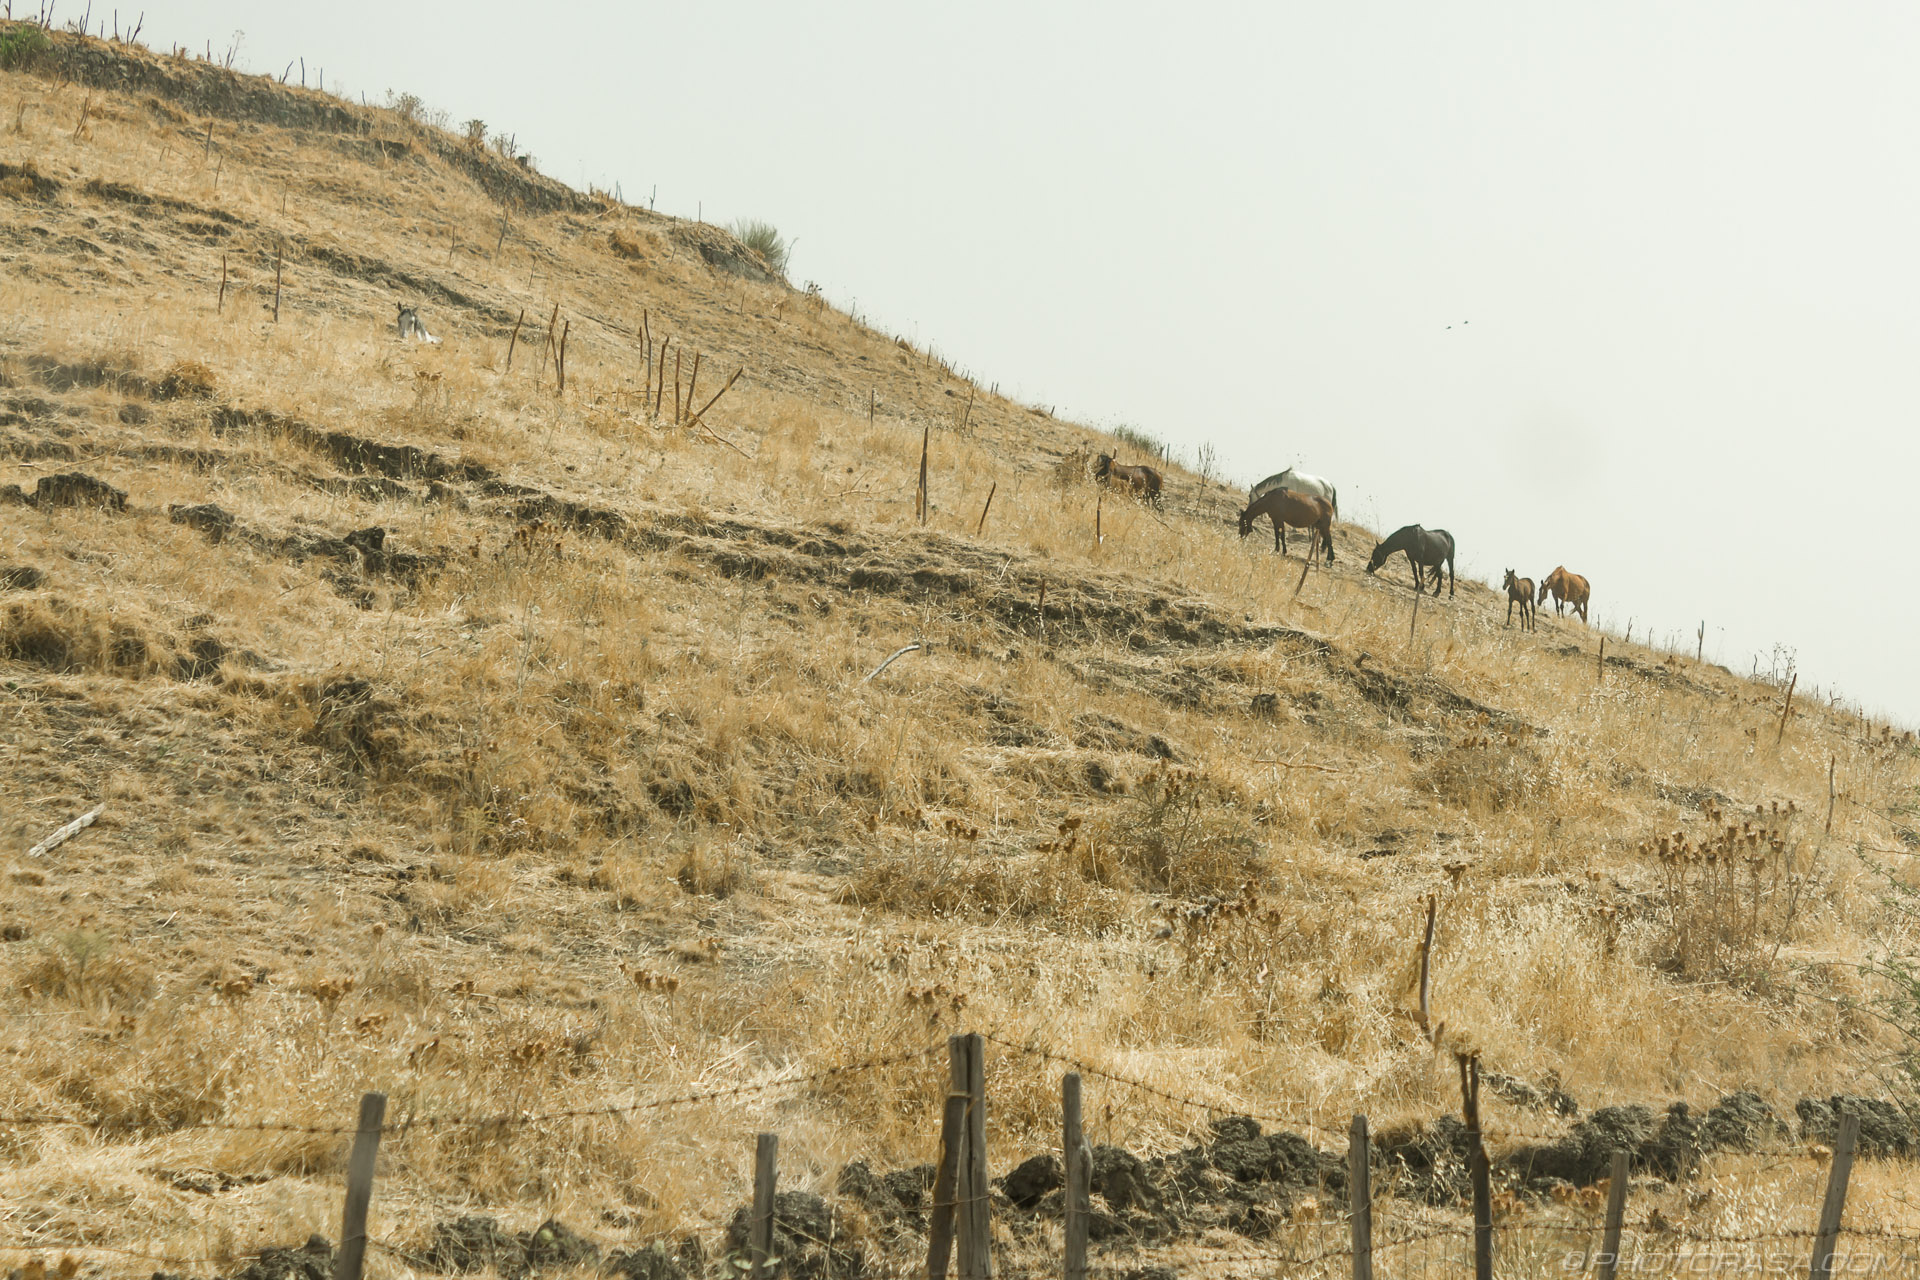 http://photorasa.com/horses-on-a-hillside/